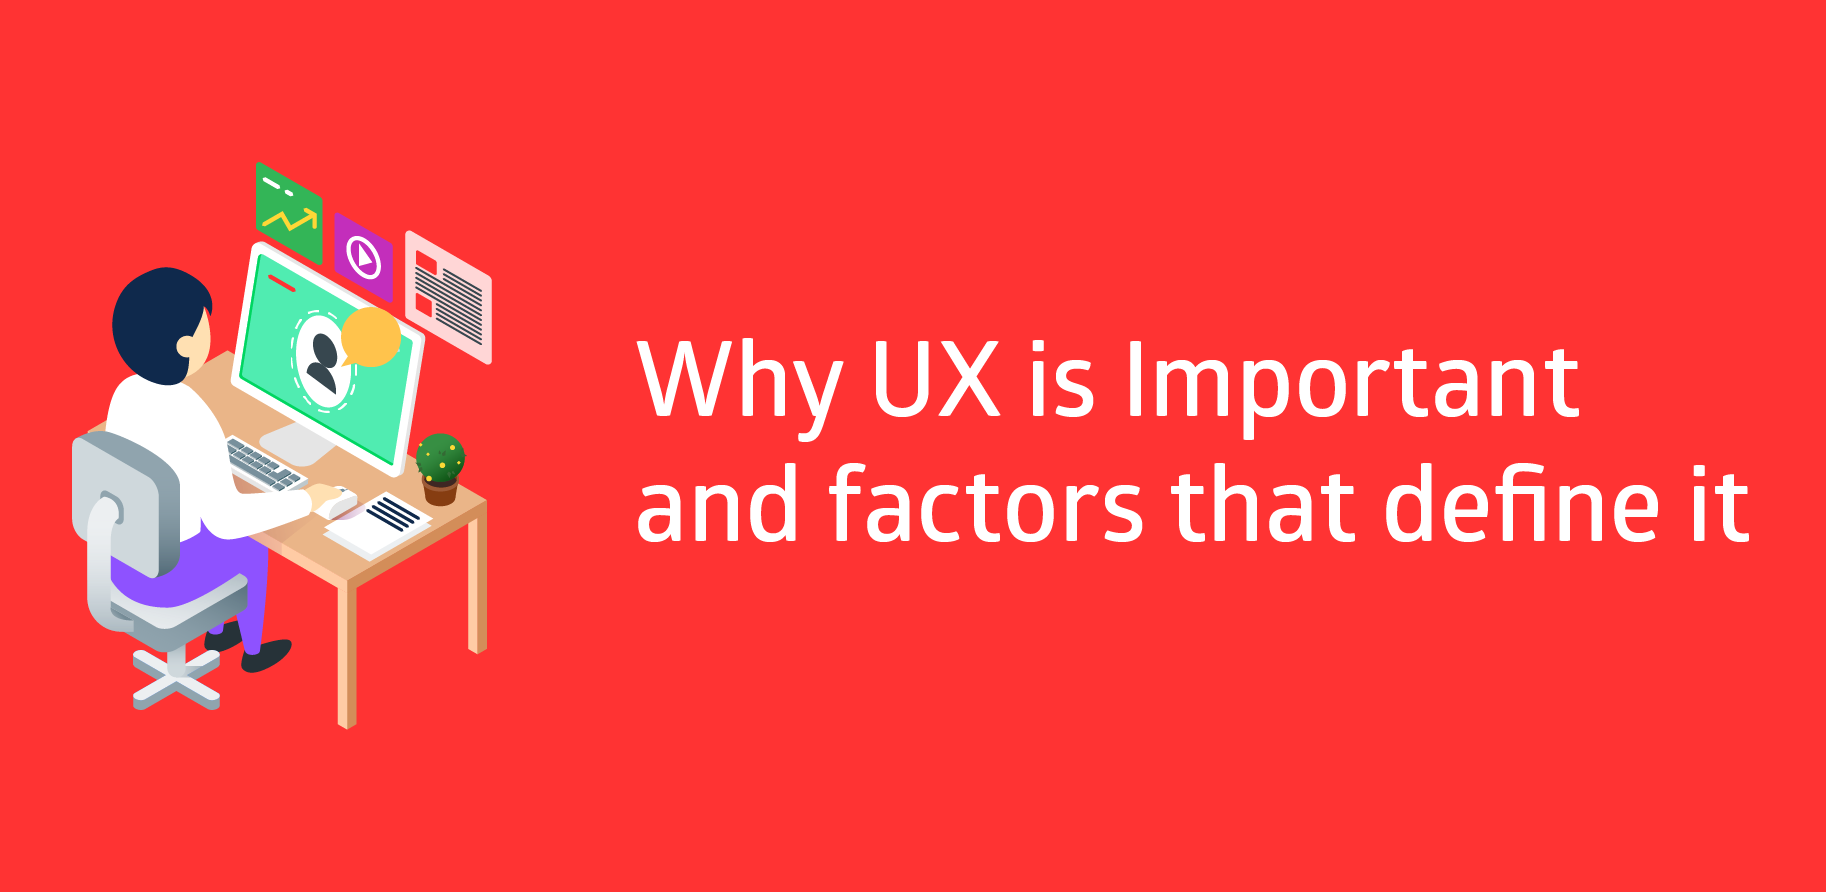 Why UX is Important and Factors that define it